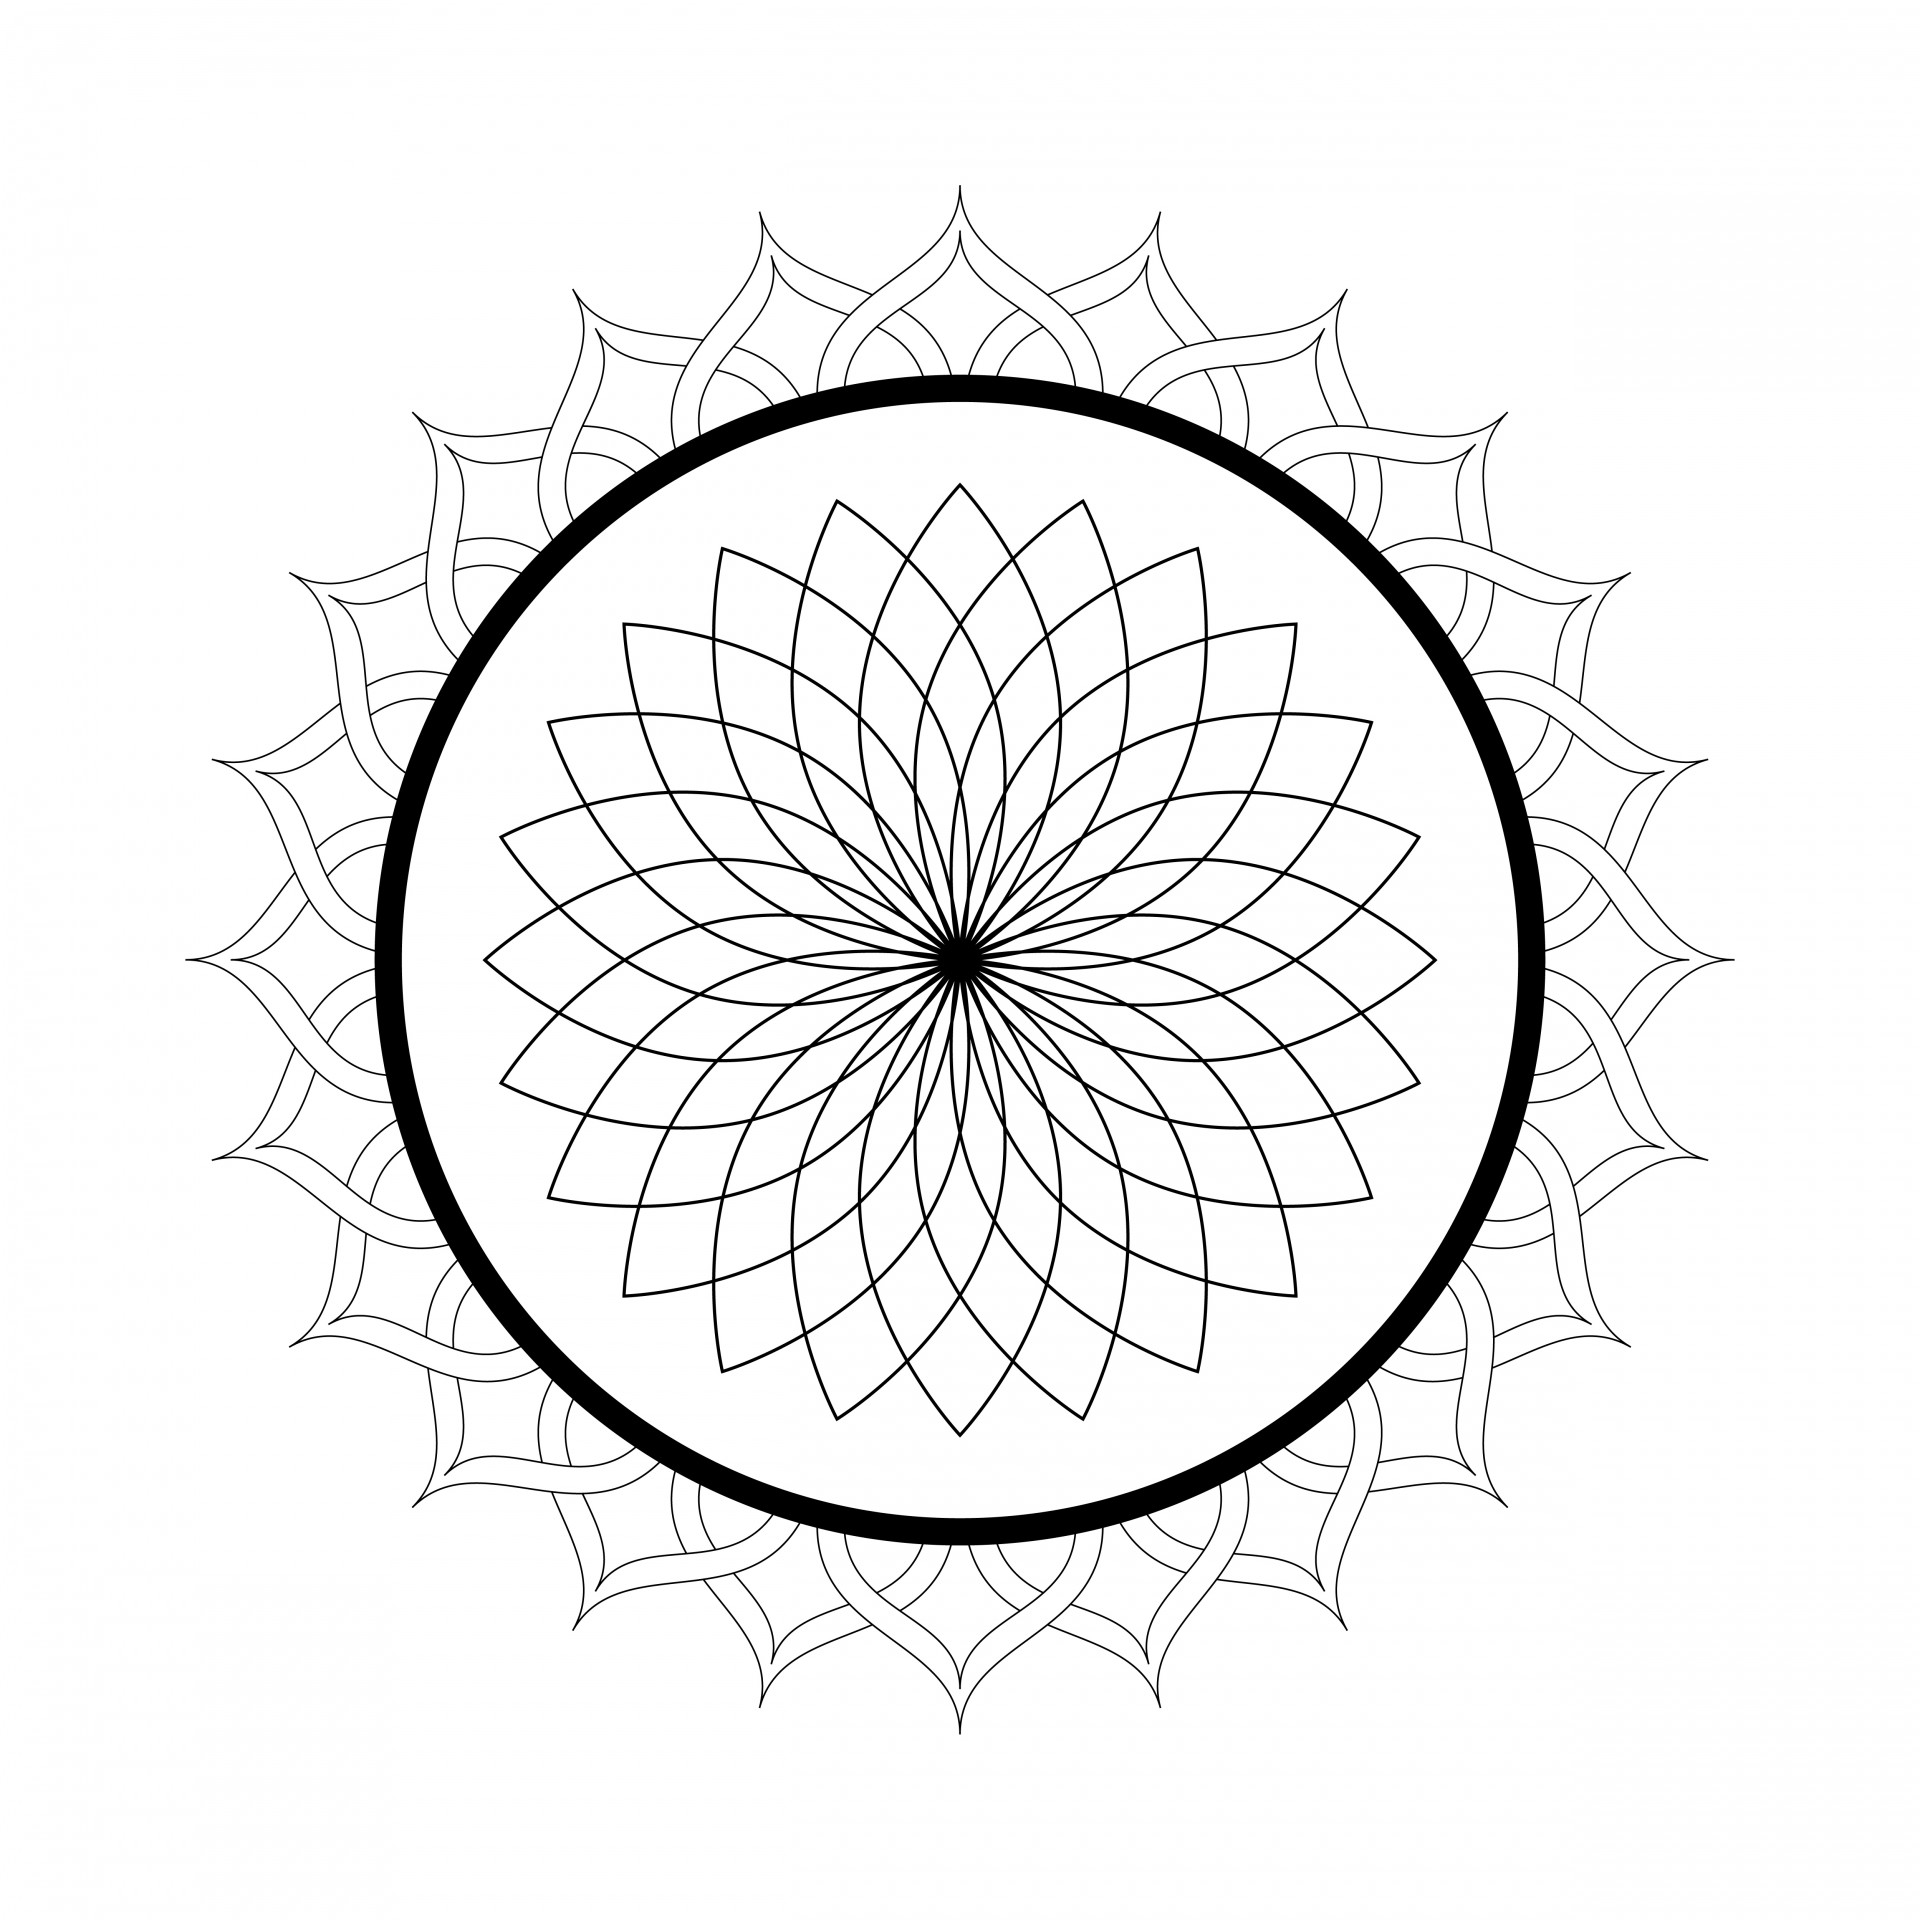 mandala coloring pages free mandala coloring pages for kids to download and print for free pages mandala free coloring